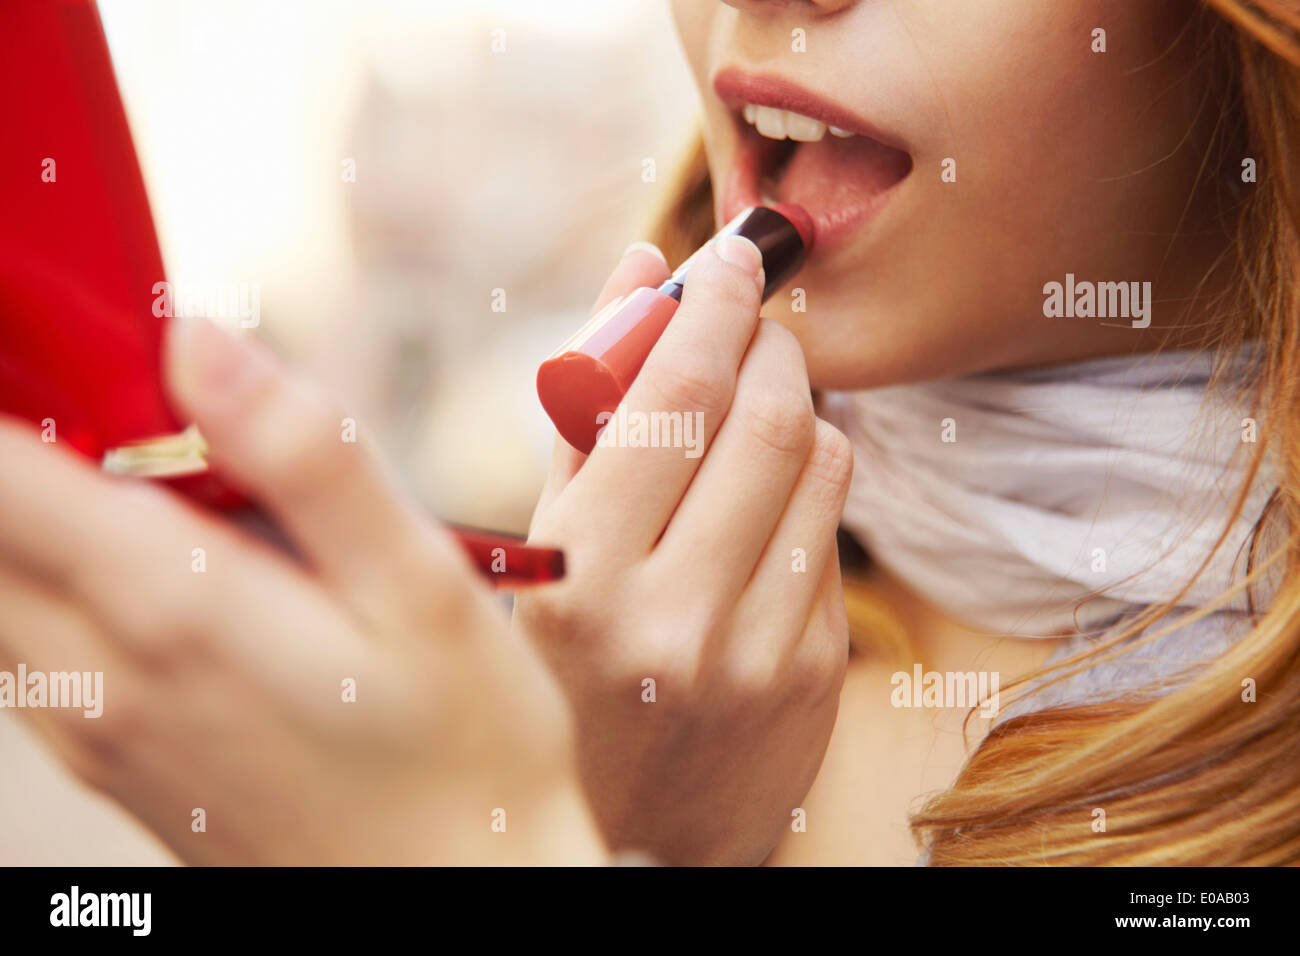 Close up of young woman putting on lipstick - Stock Image